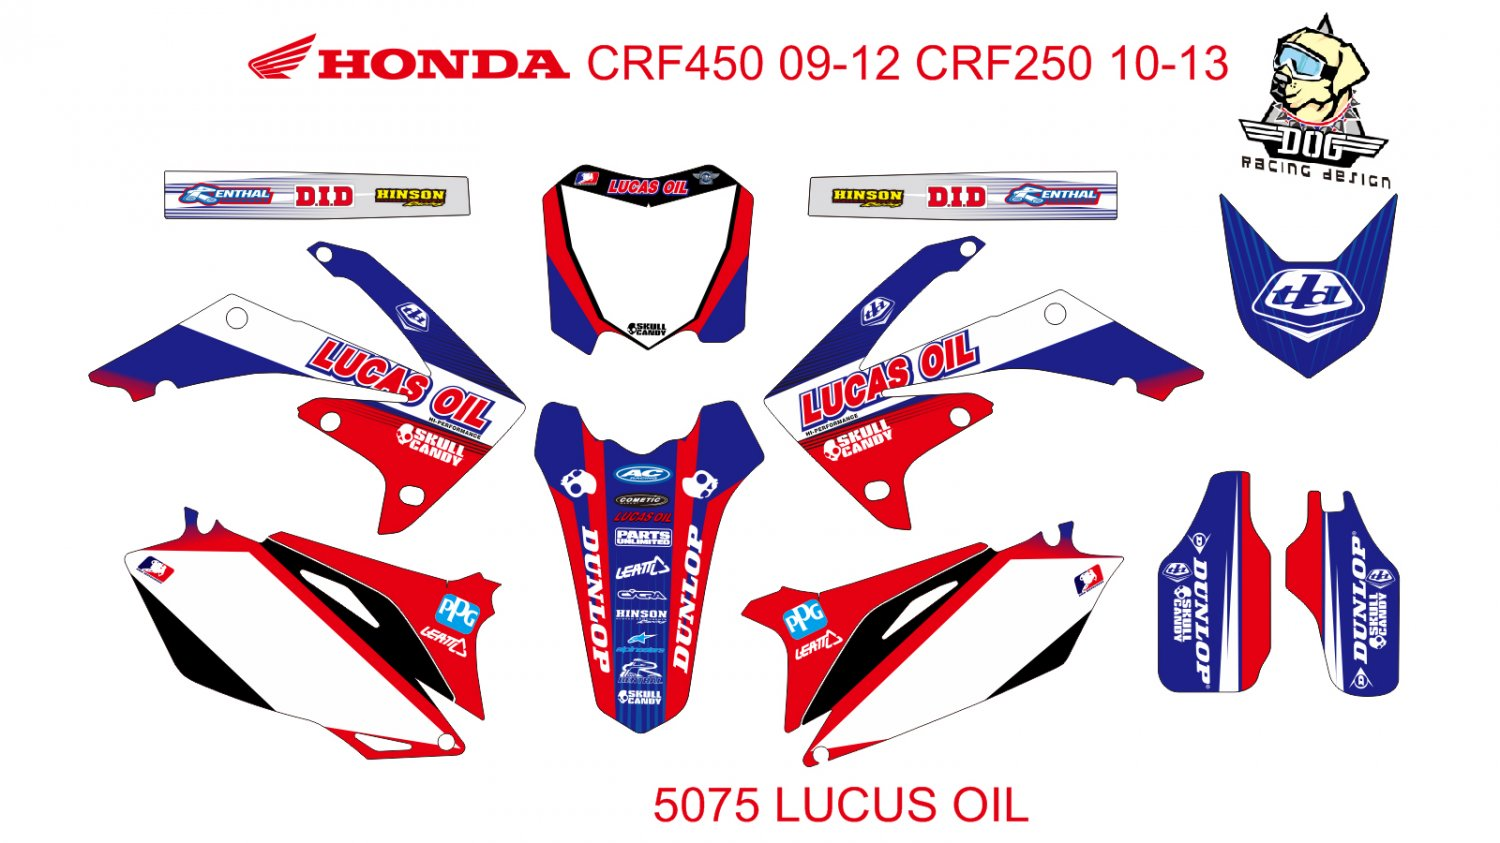 HONDA CRF 450 2009-2012 CRF 250 2010-2013 GRAPHIC DECAL KIT CODE.5075